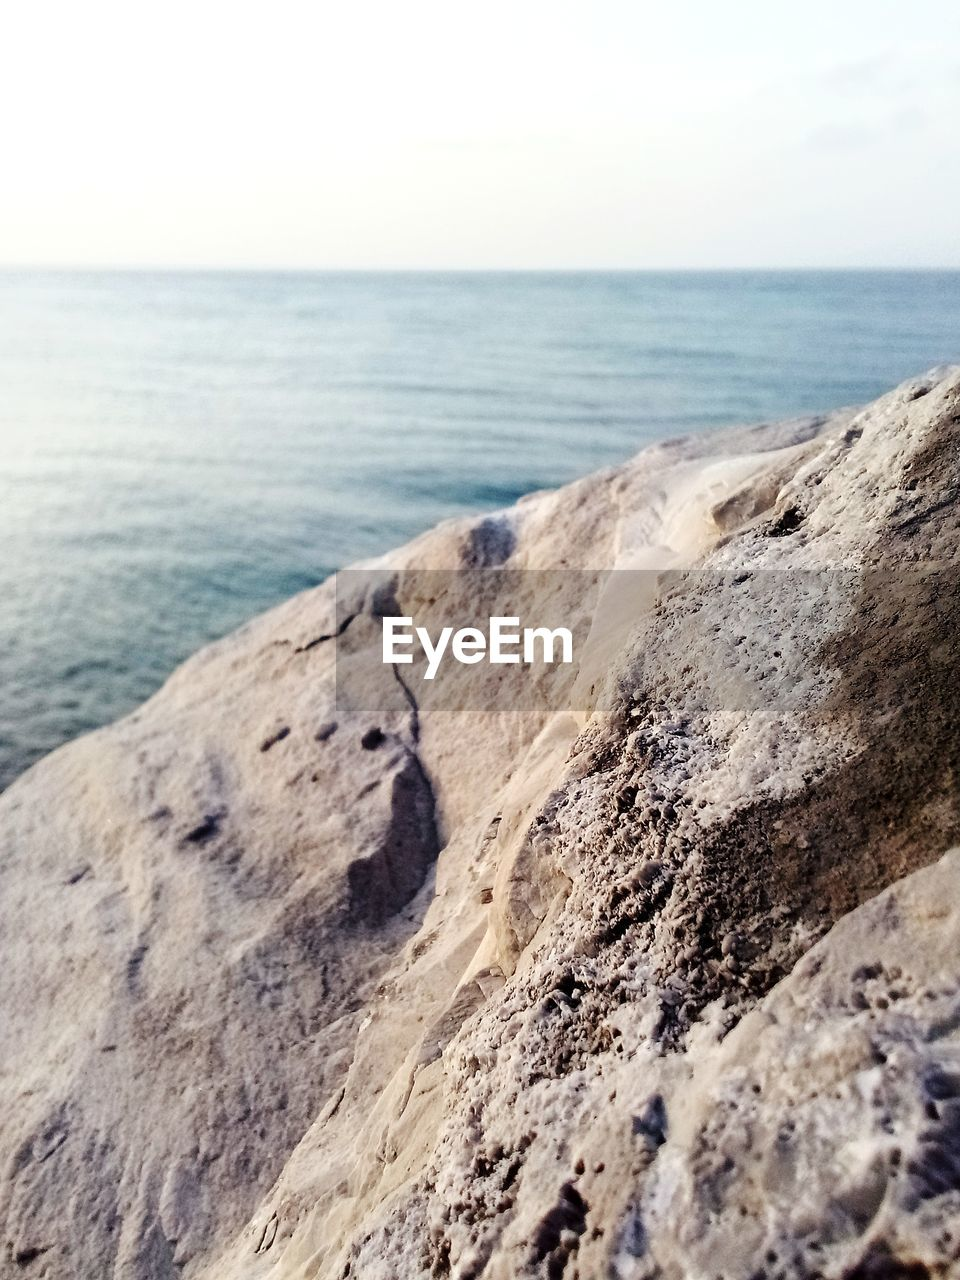 sea, horizon, horizon over water, sky, water, scenics - nature, beauty in nature, land, beach, tranquility, tranquil scene, nature, no people, rock, day, rock - object, solid, idyllic, outdoors